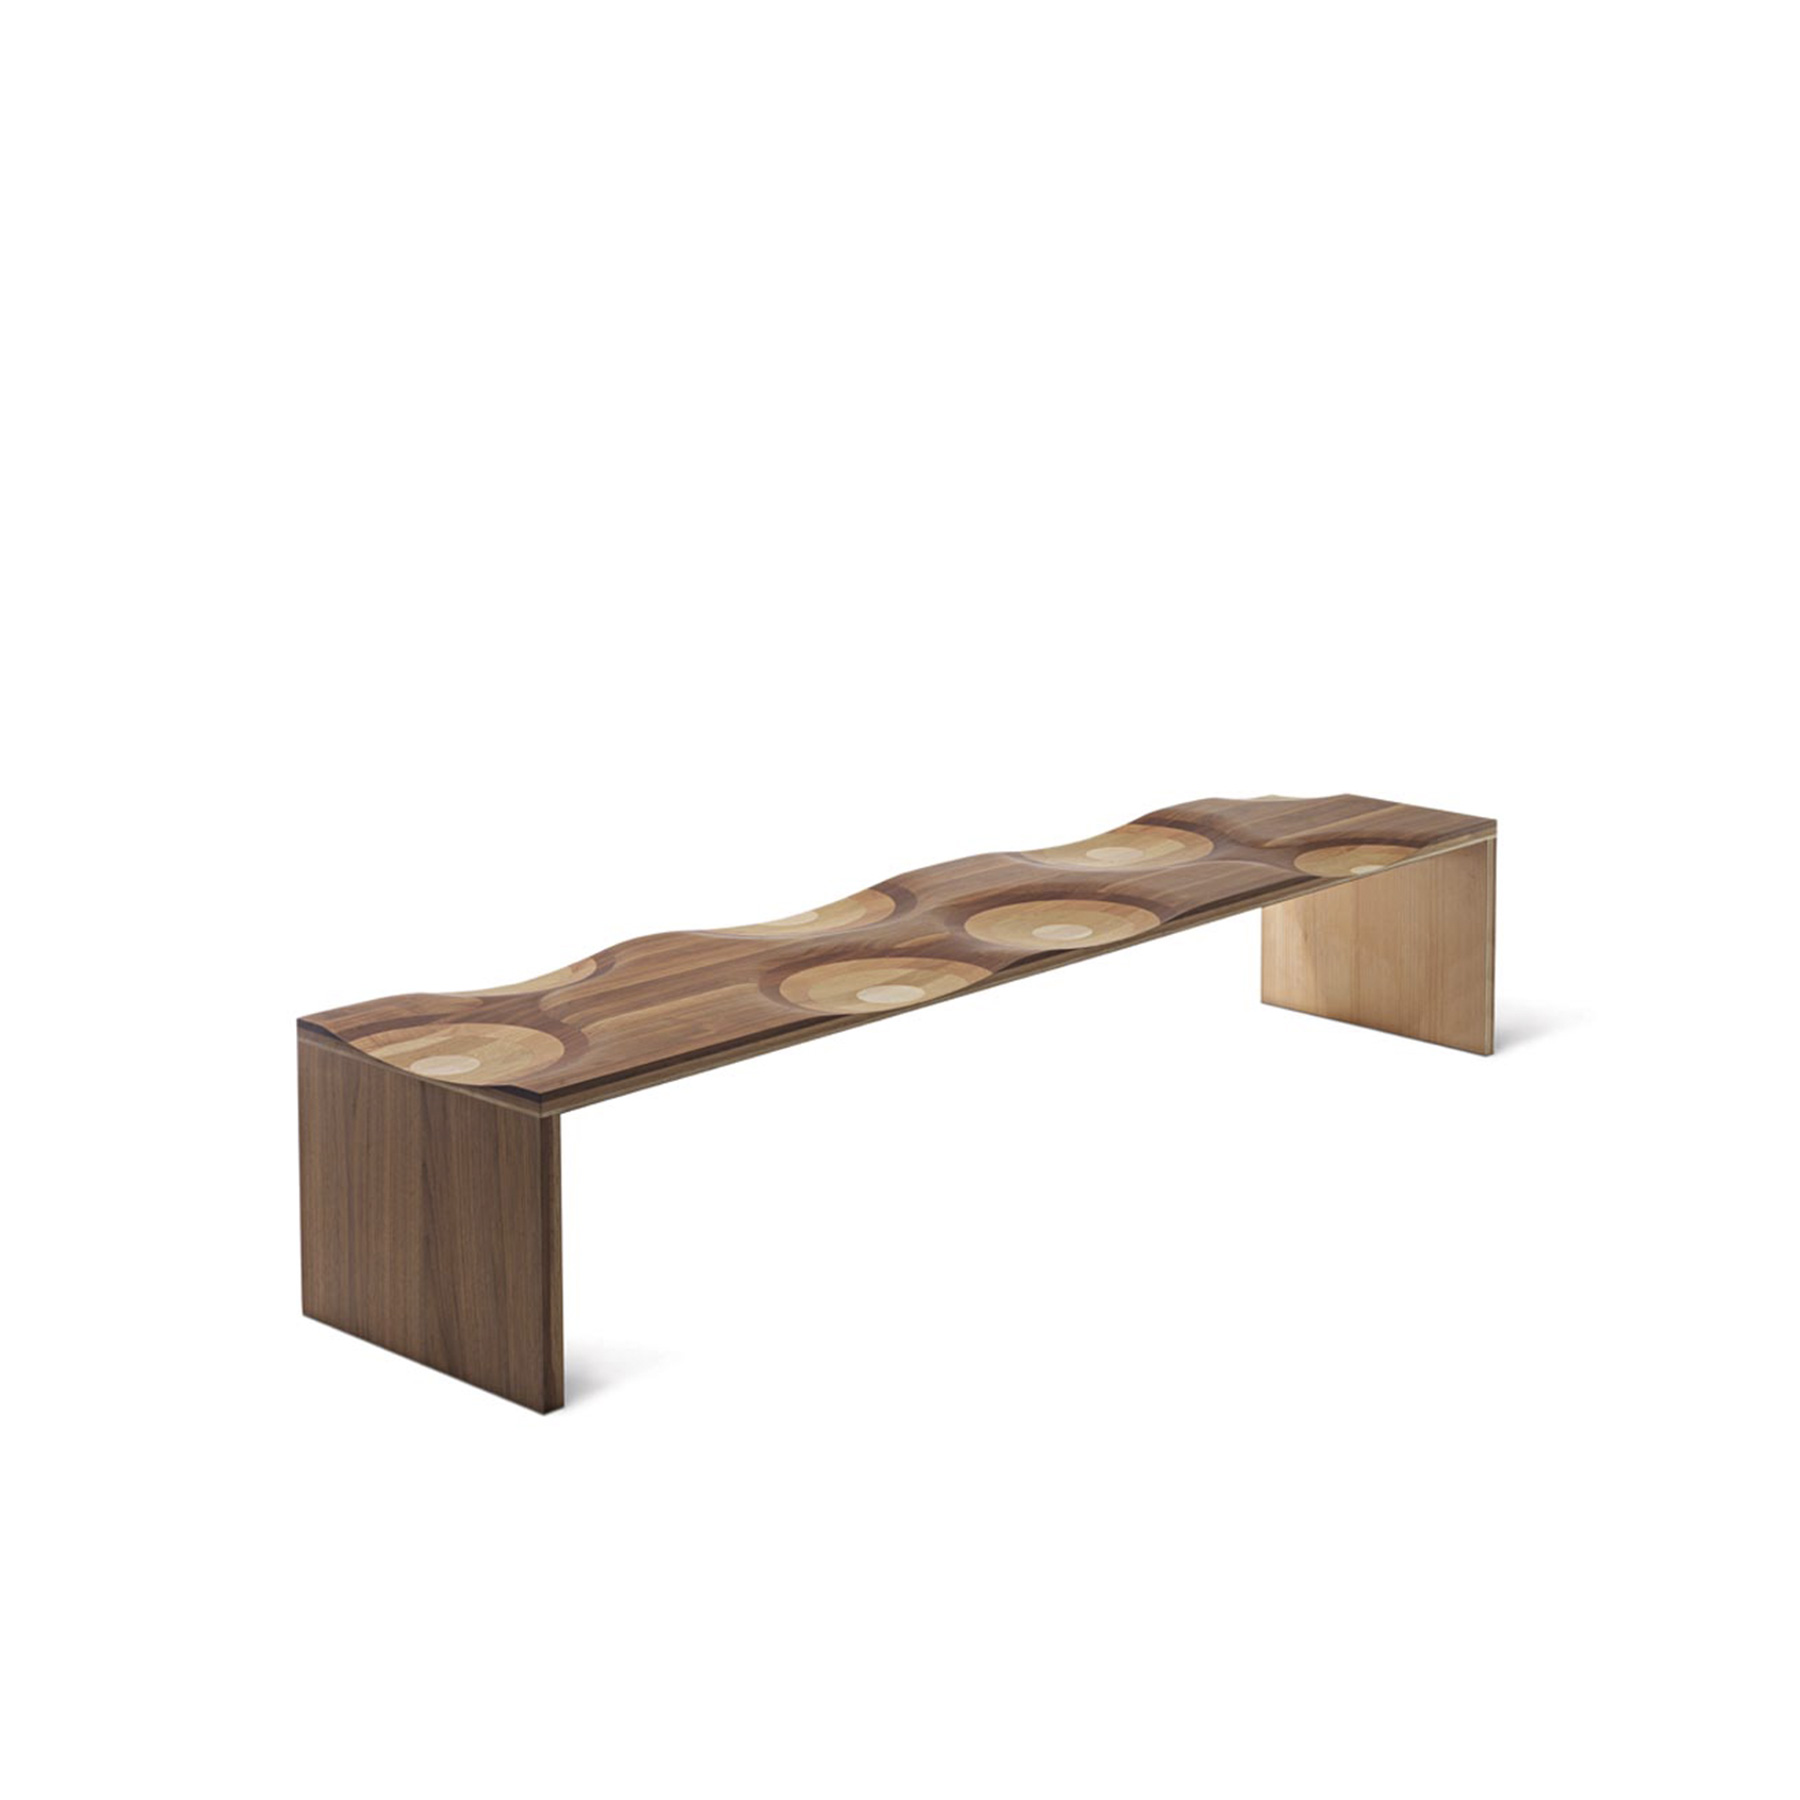 Ripples Bench - Ripples, winner of the 2004 Compasso d'Oro, is made of a laminated composite of five different solid woods. Slide your hand along the surface to enjoy the seamless transitions between walnut, mahogany, cherry, oak, and ash. The seat is reinforced with a hidden metal bar. This enveloping seat, carved with mastery, is hand-finished to produce an elegant polychromatic effect arising from the ductility of the wood. A true icon of international design, Ripples is a bench suitable for home users, commercial environments, and public spaces.